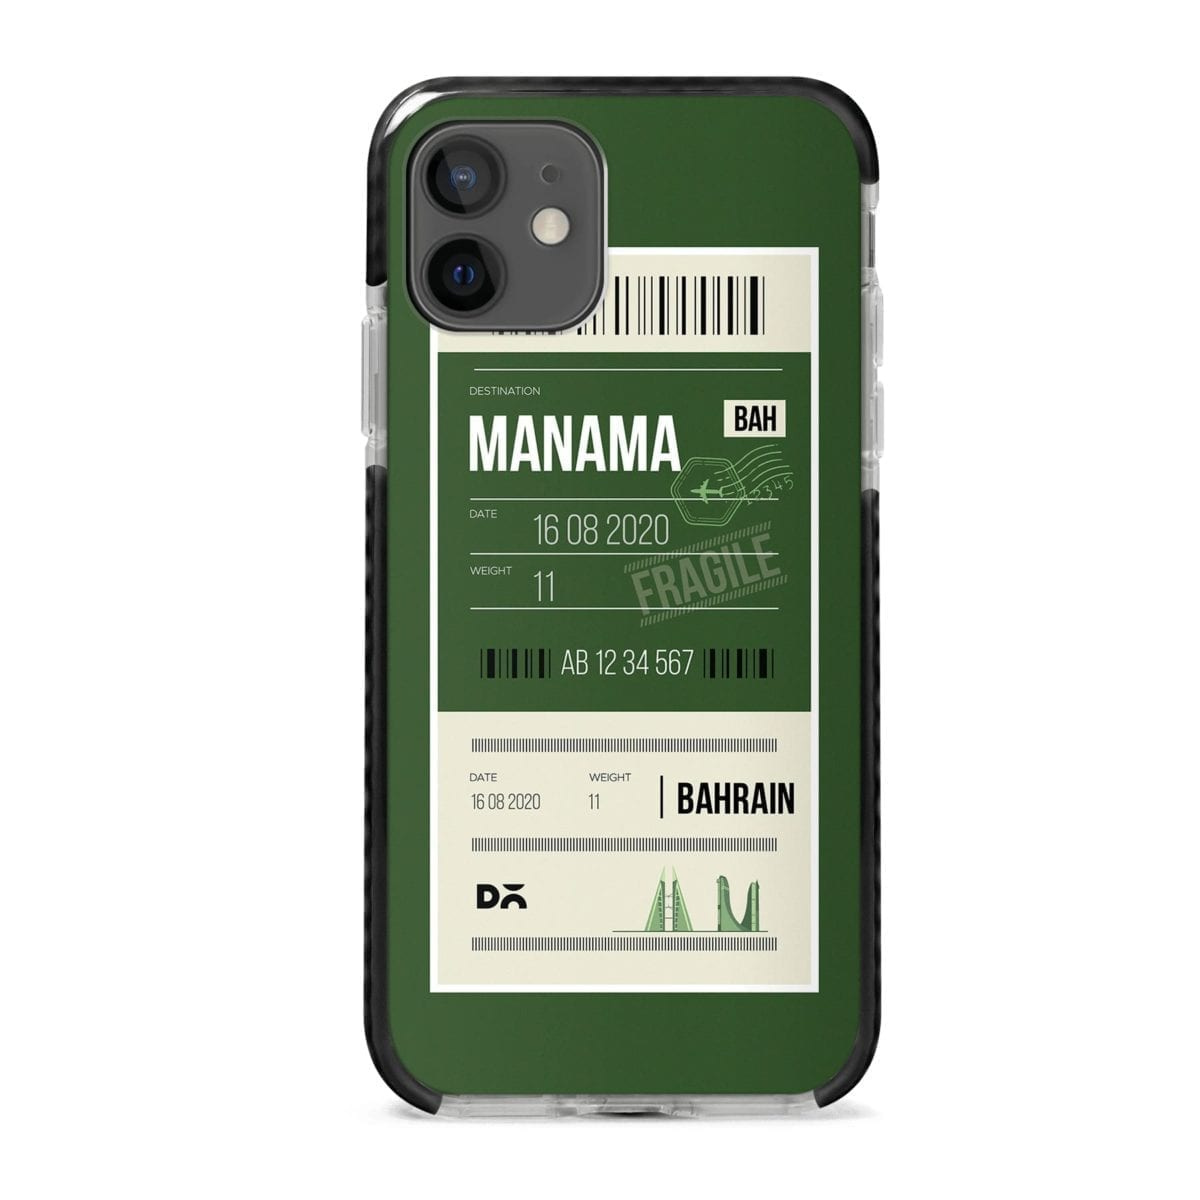 Manama Bahrain City Stride Case Cover for Apple iPhone 12 Mini and Apple iPhone 12 with great design and shock proof | Klippik | Online Shopping | Kuwait UAE Saudi